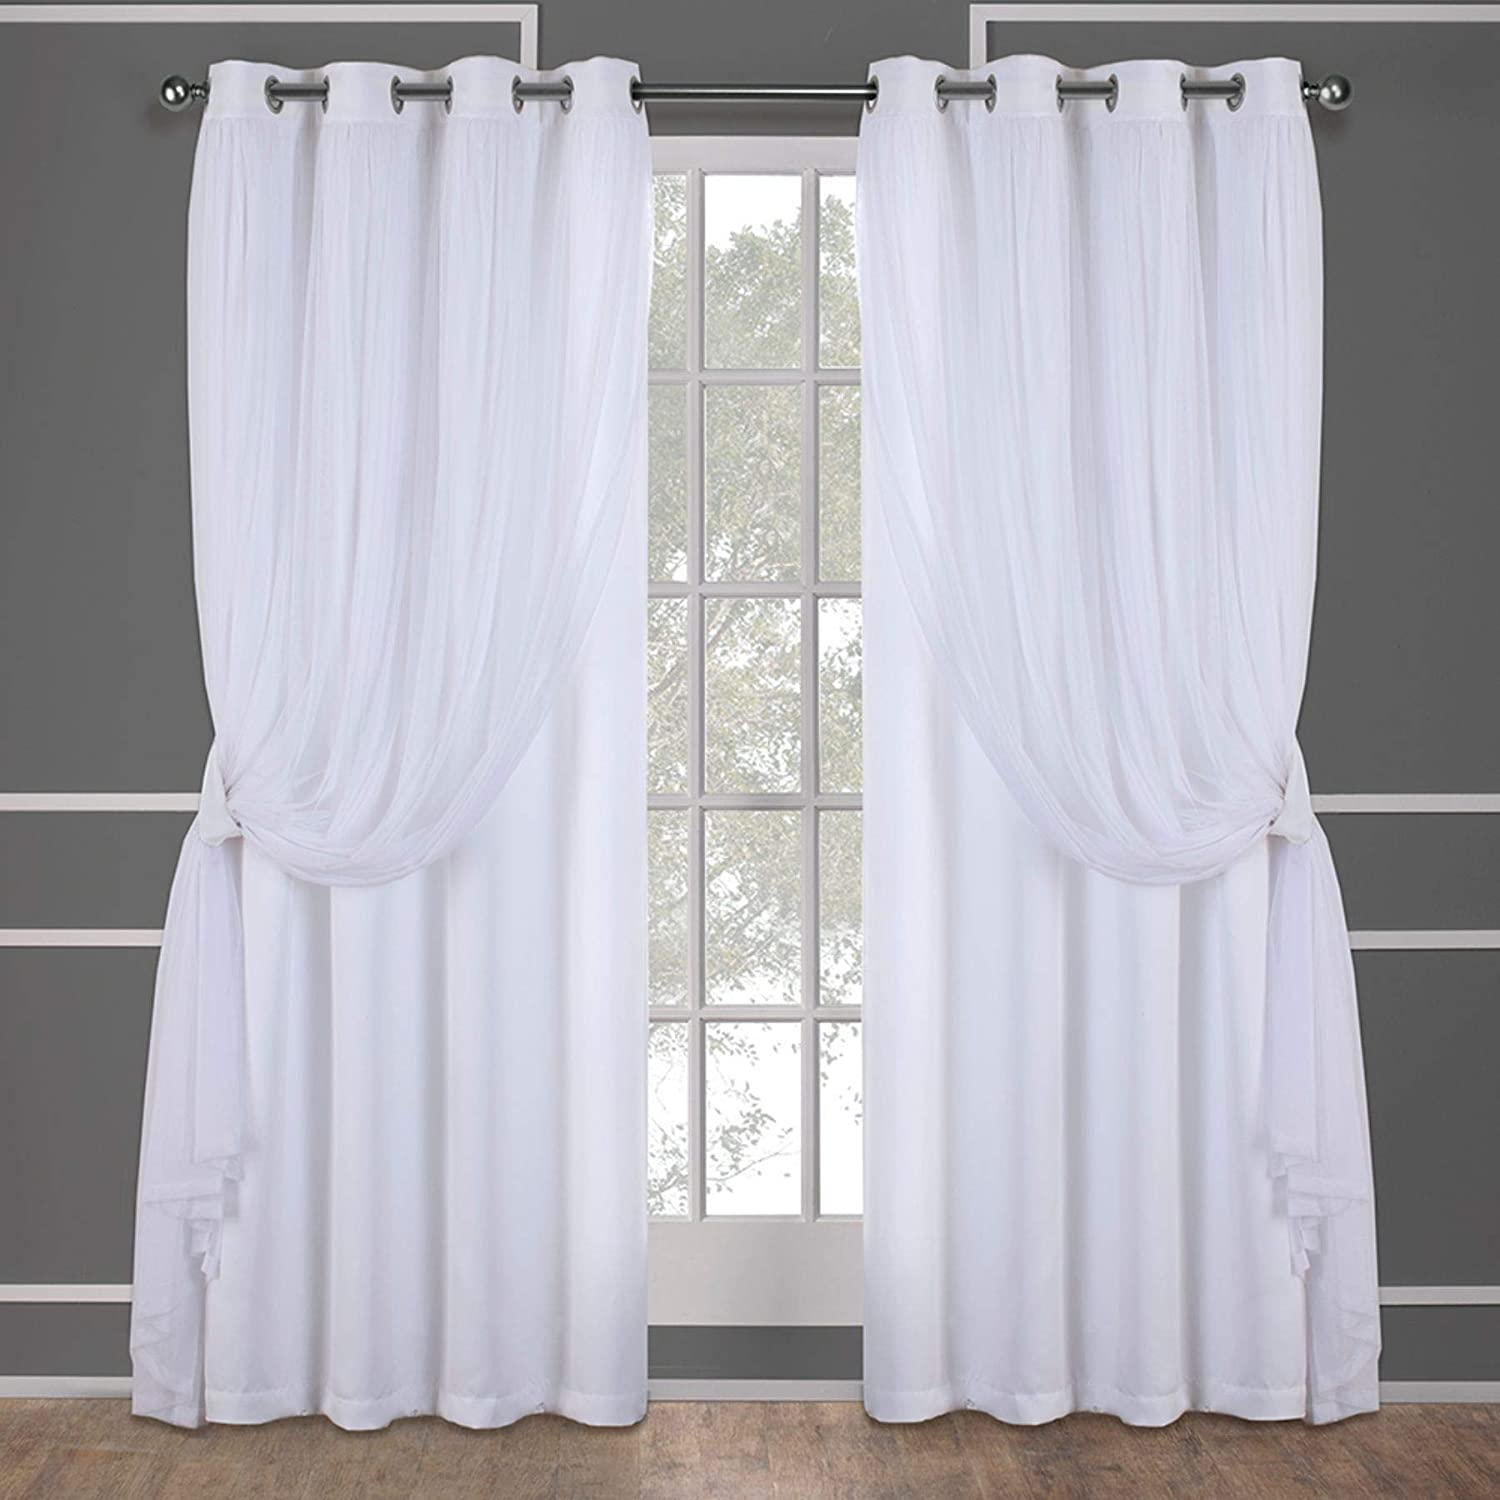 Amazon Com Exclusive Home Curtains Catarina Layered Solid Blackout And Sheer Window Curtain Panel Pair With Grommet Top 52x84 Winter White 2 Count Home Kitchen